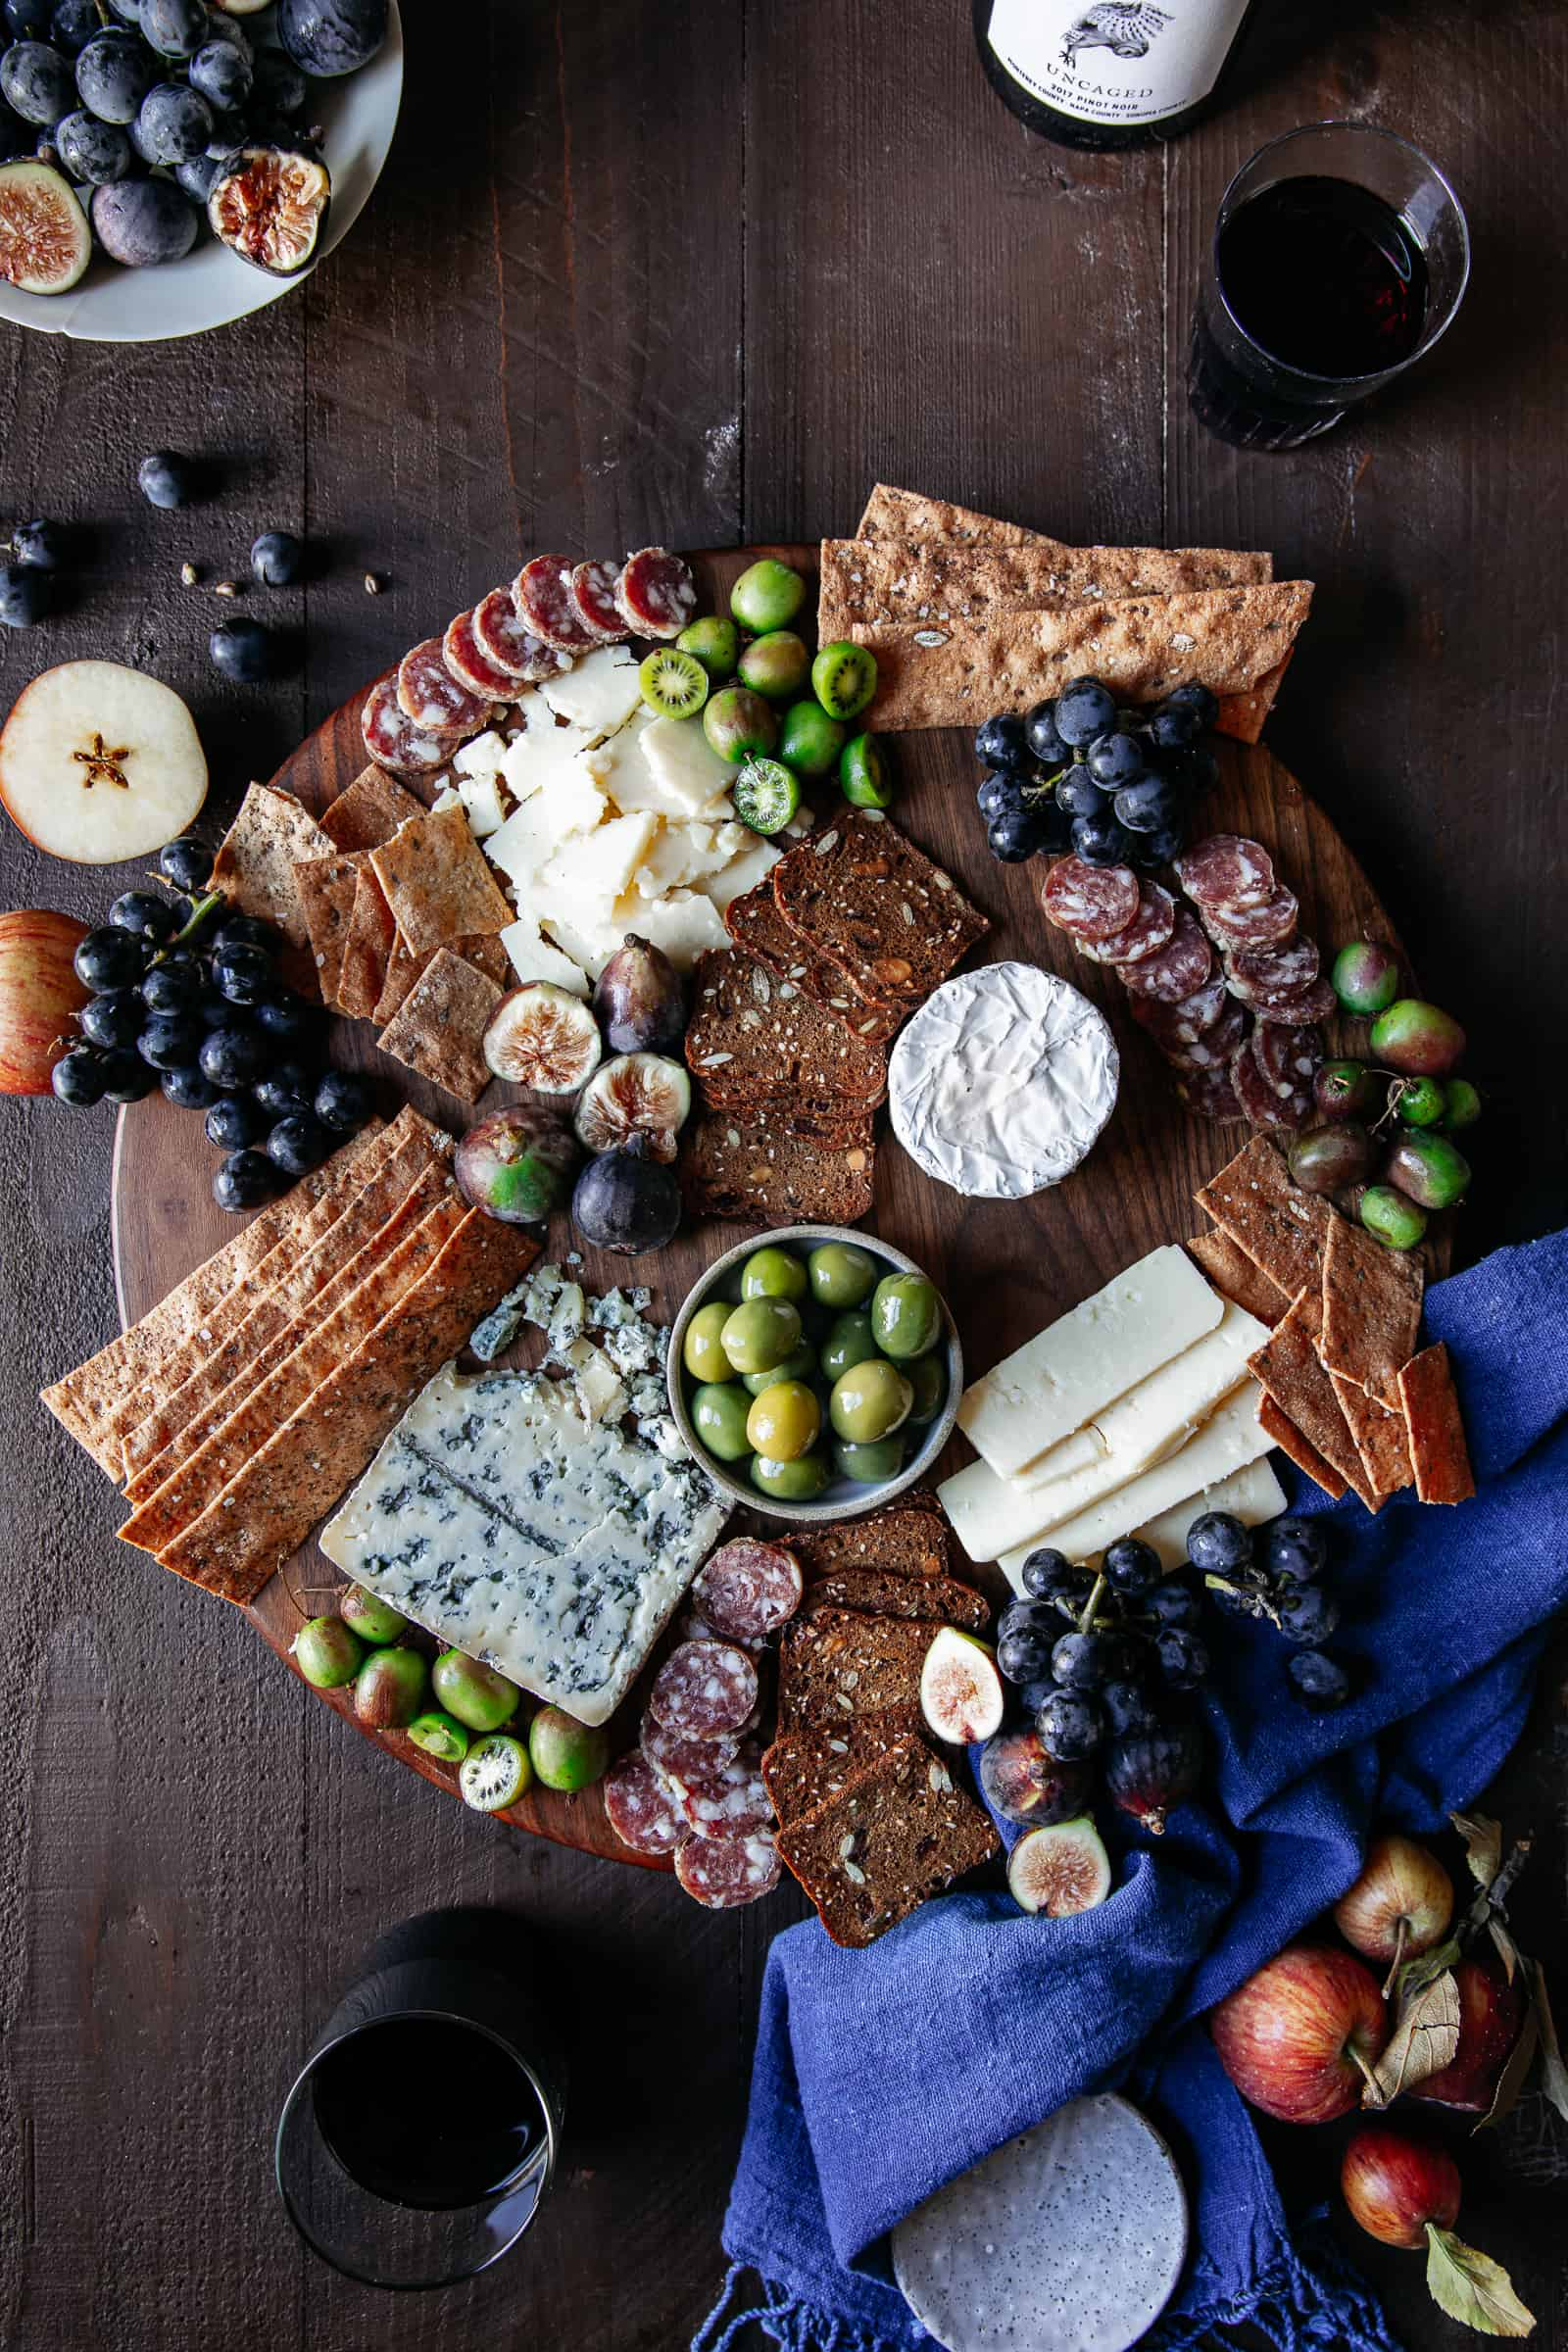 Cheeseboard Styling Step 4 — Place any accoutrements